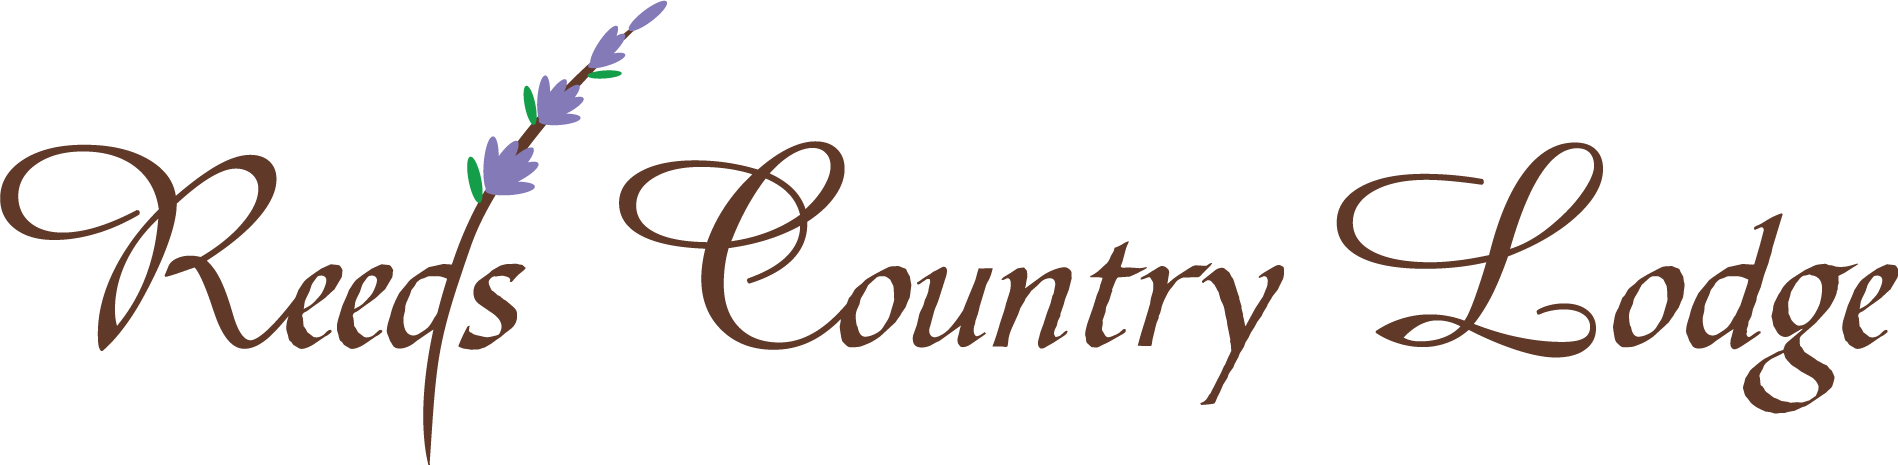 Reeds Country Lodge brand logo